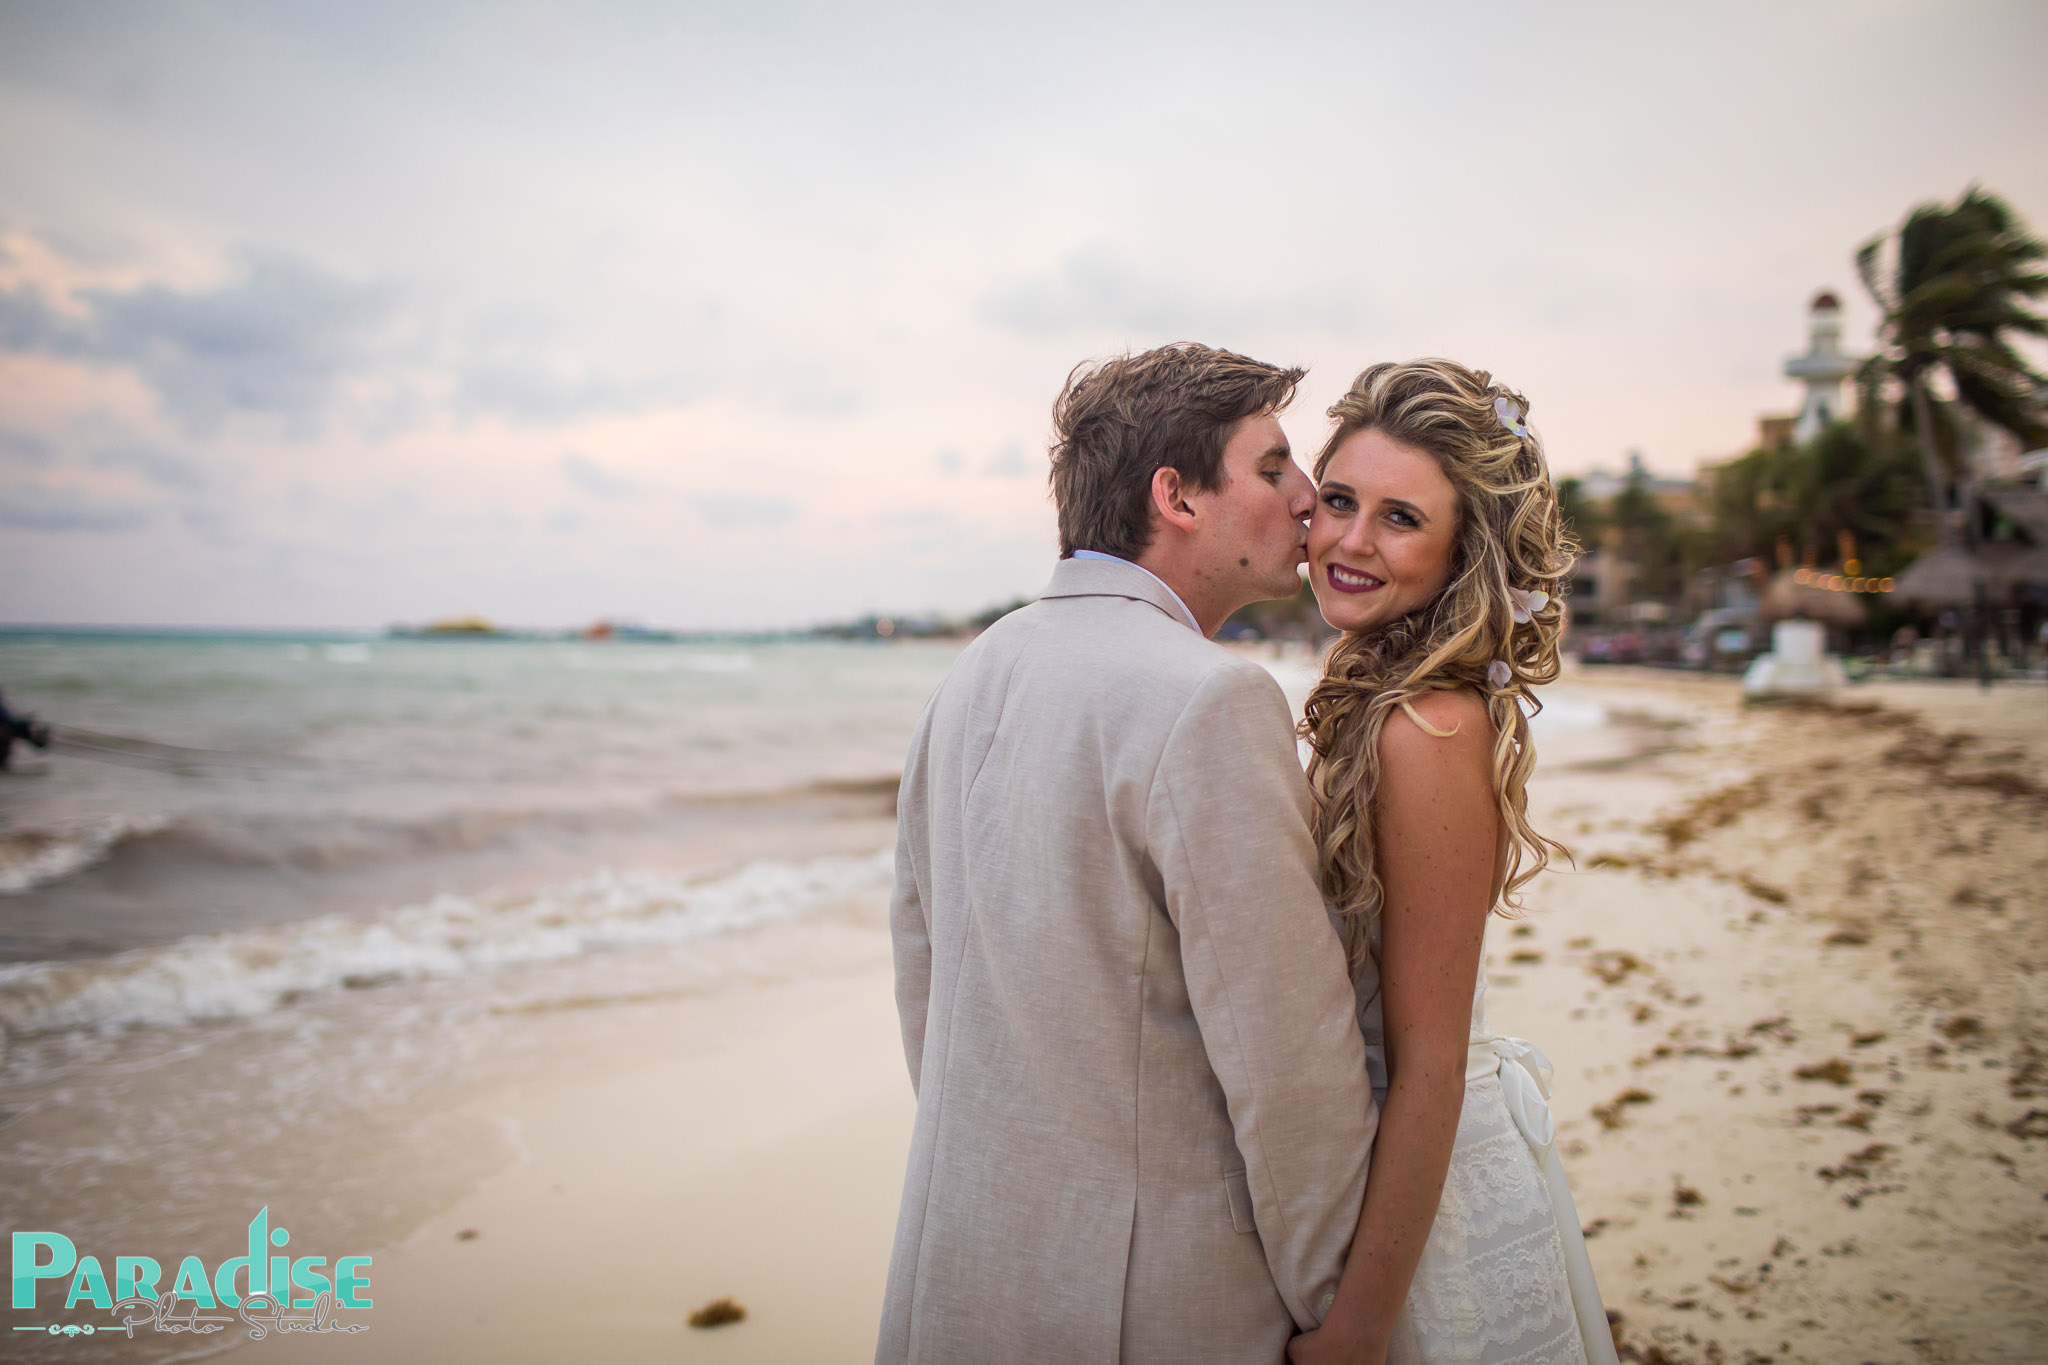 Mexico Destination Wedding Photographer Paradise Photo Studio